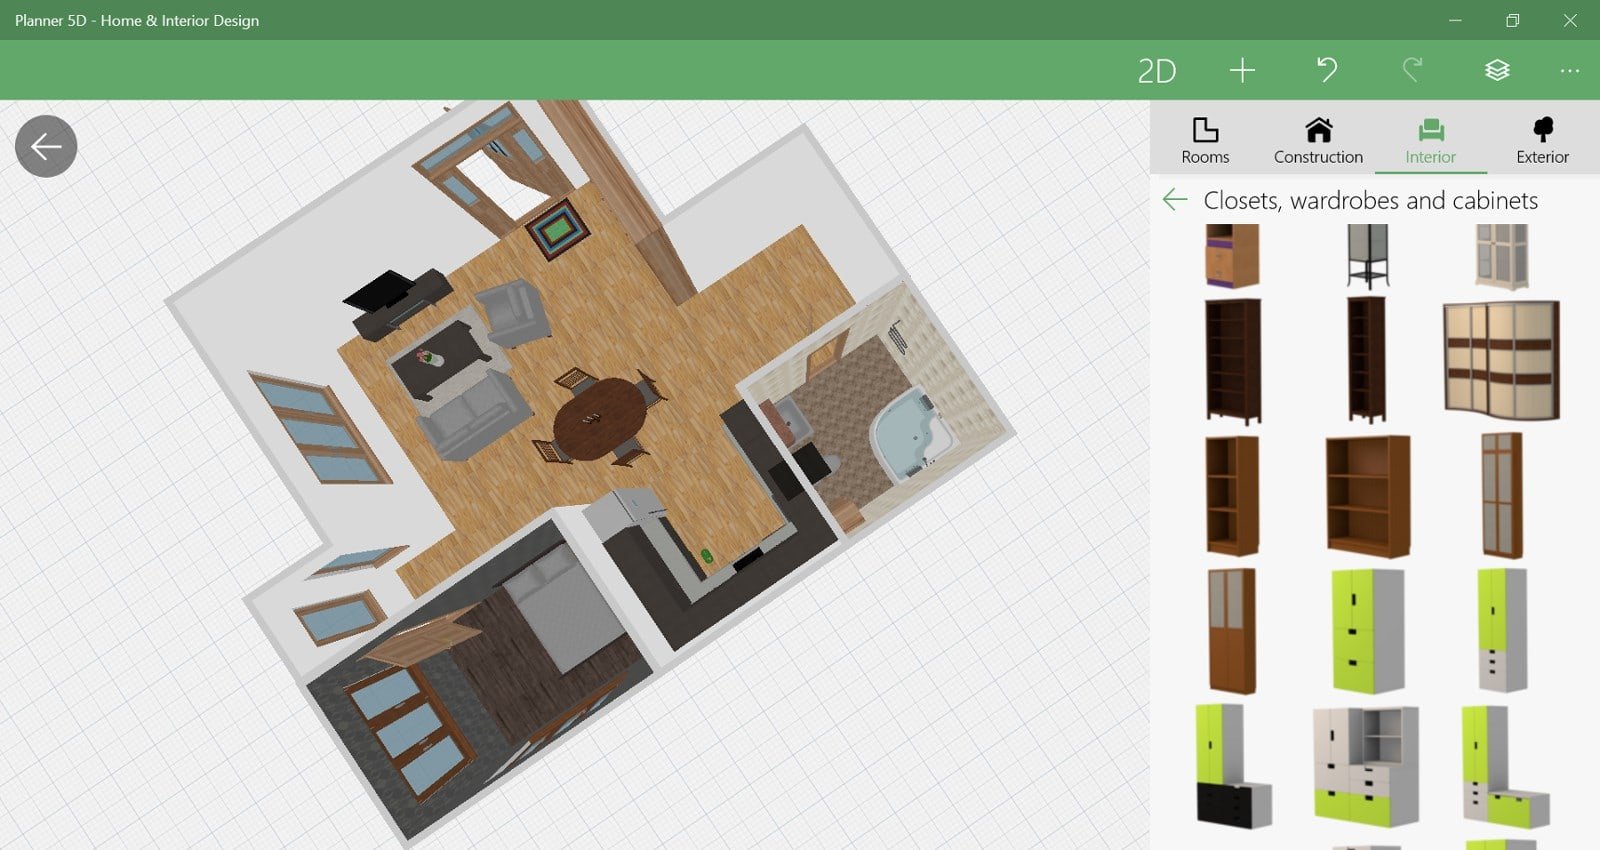 Planner 5d home interior design download for Floor plan maker free no download